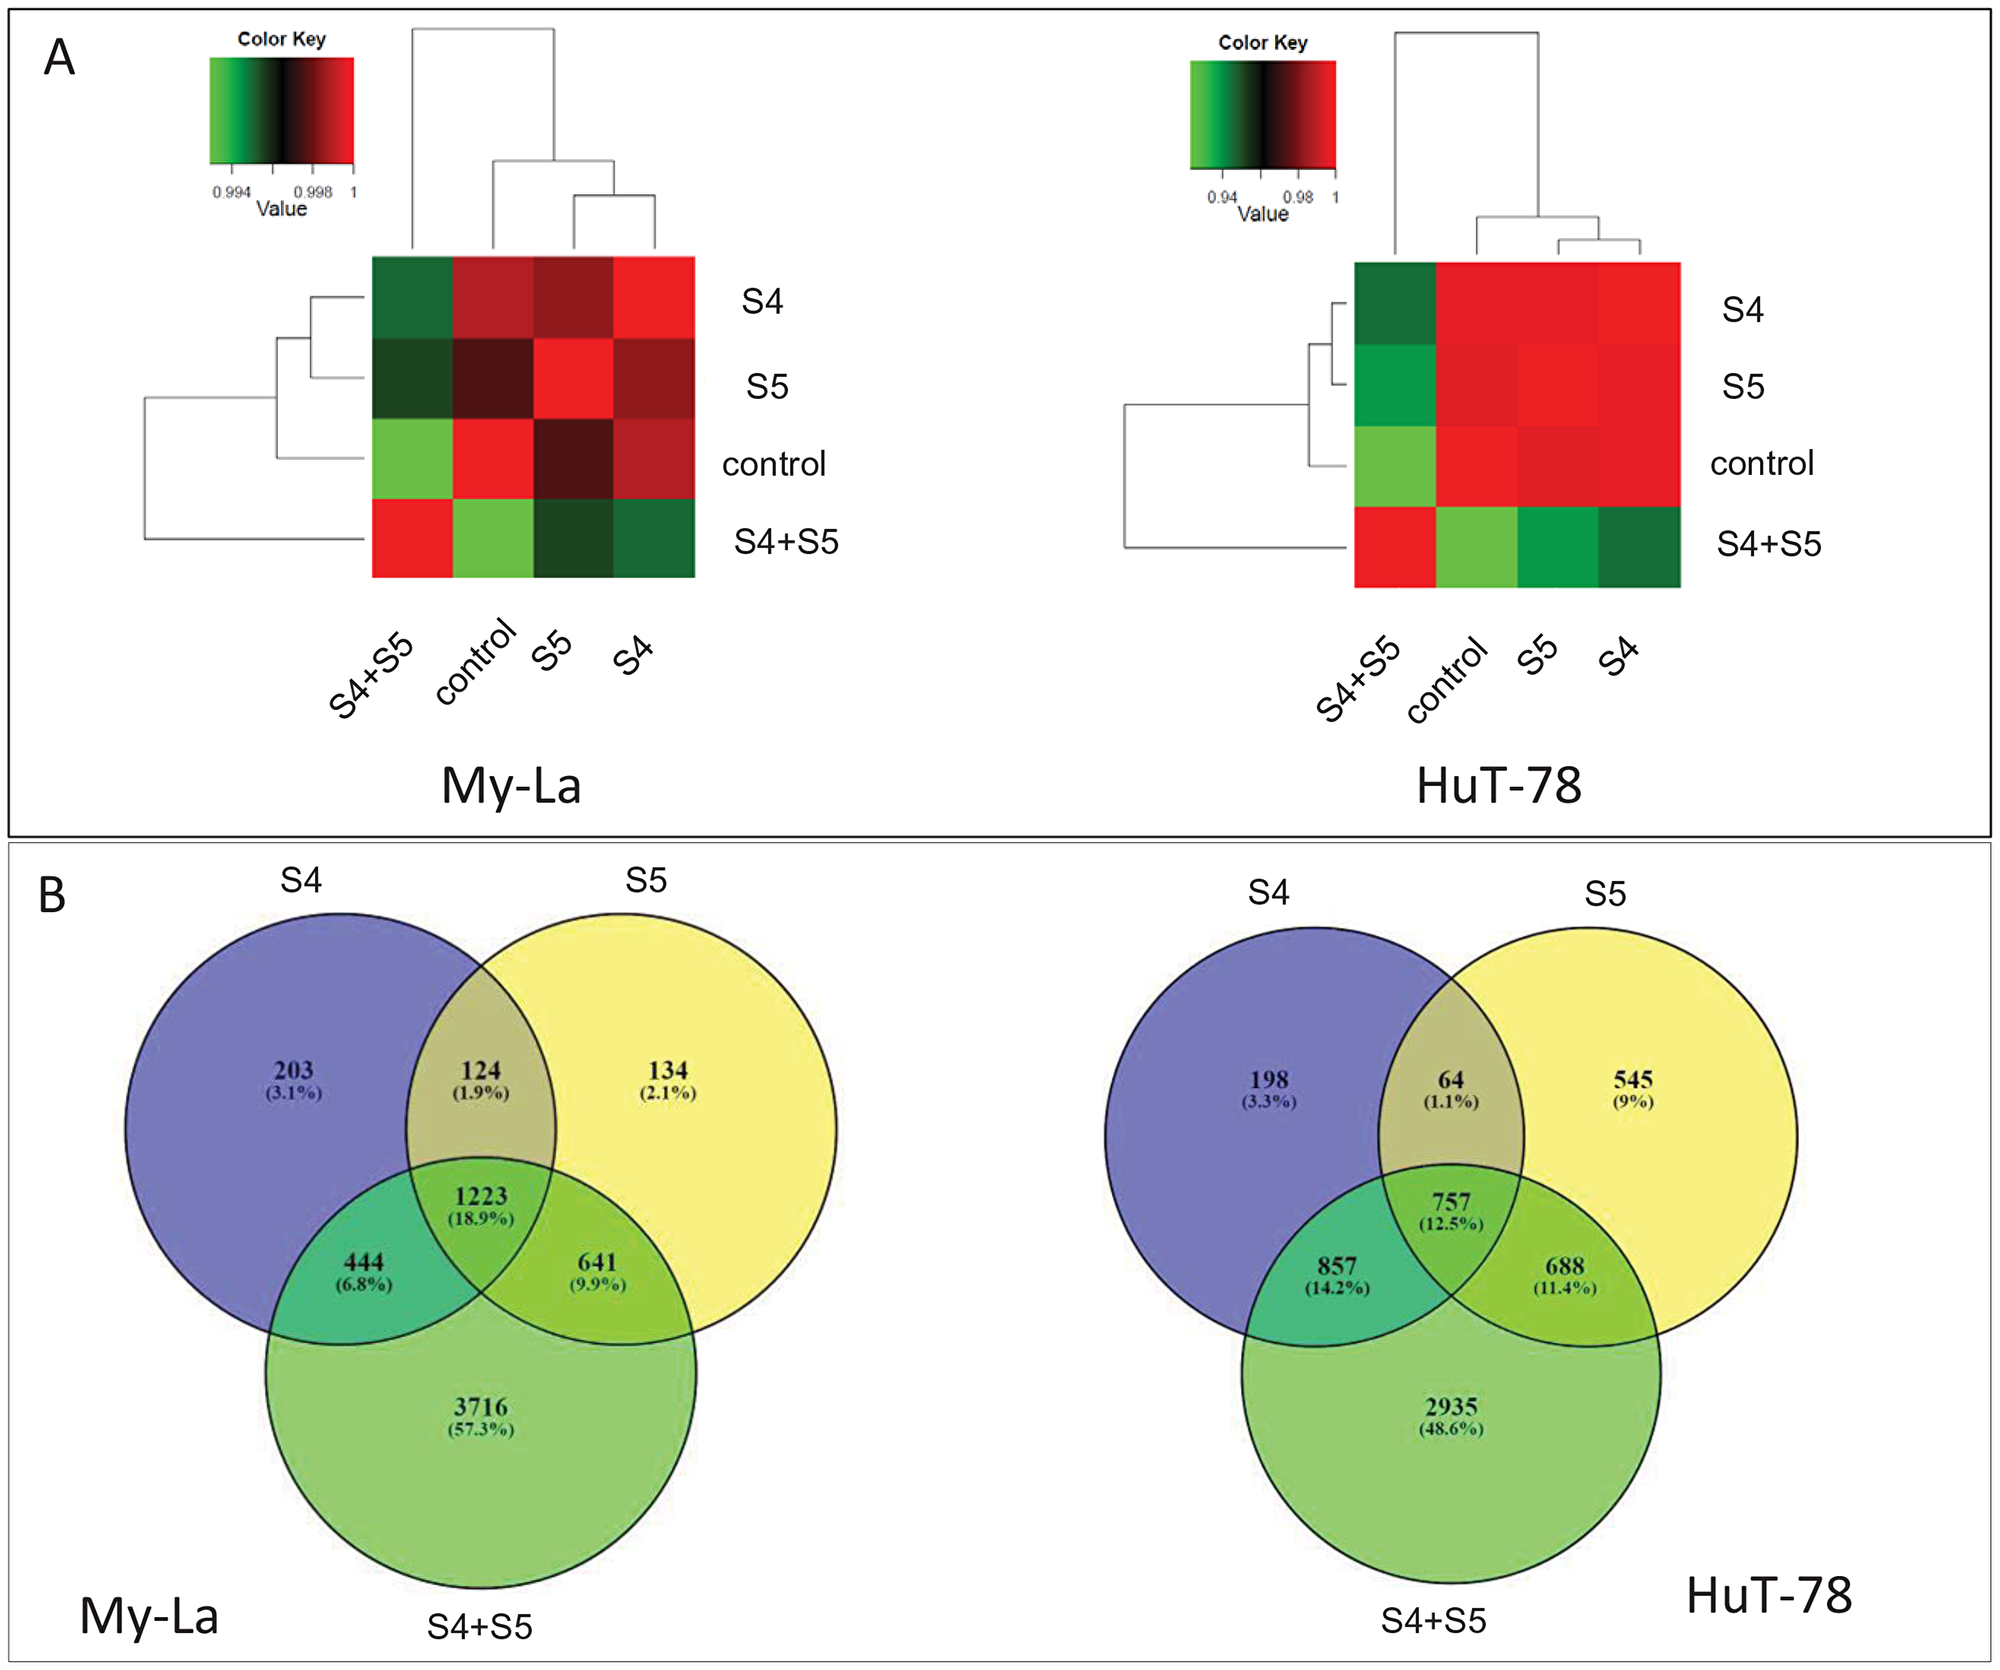 Hierarchical clustering and Venn diagram of genes significantly differentially expressed genes in My-La and HuT-78 cells treated with S4, S5 or the S4+S5 synergistic combination.